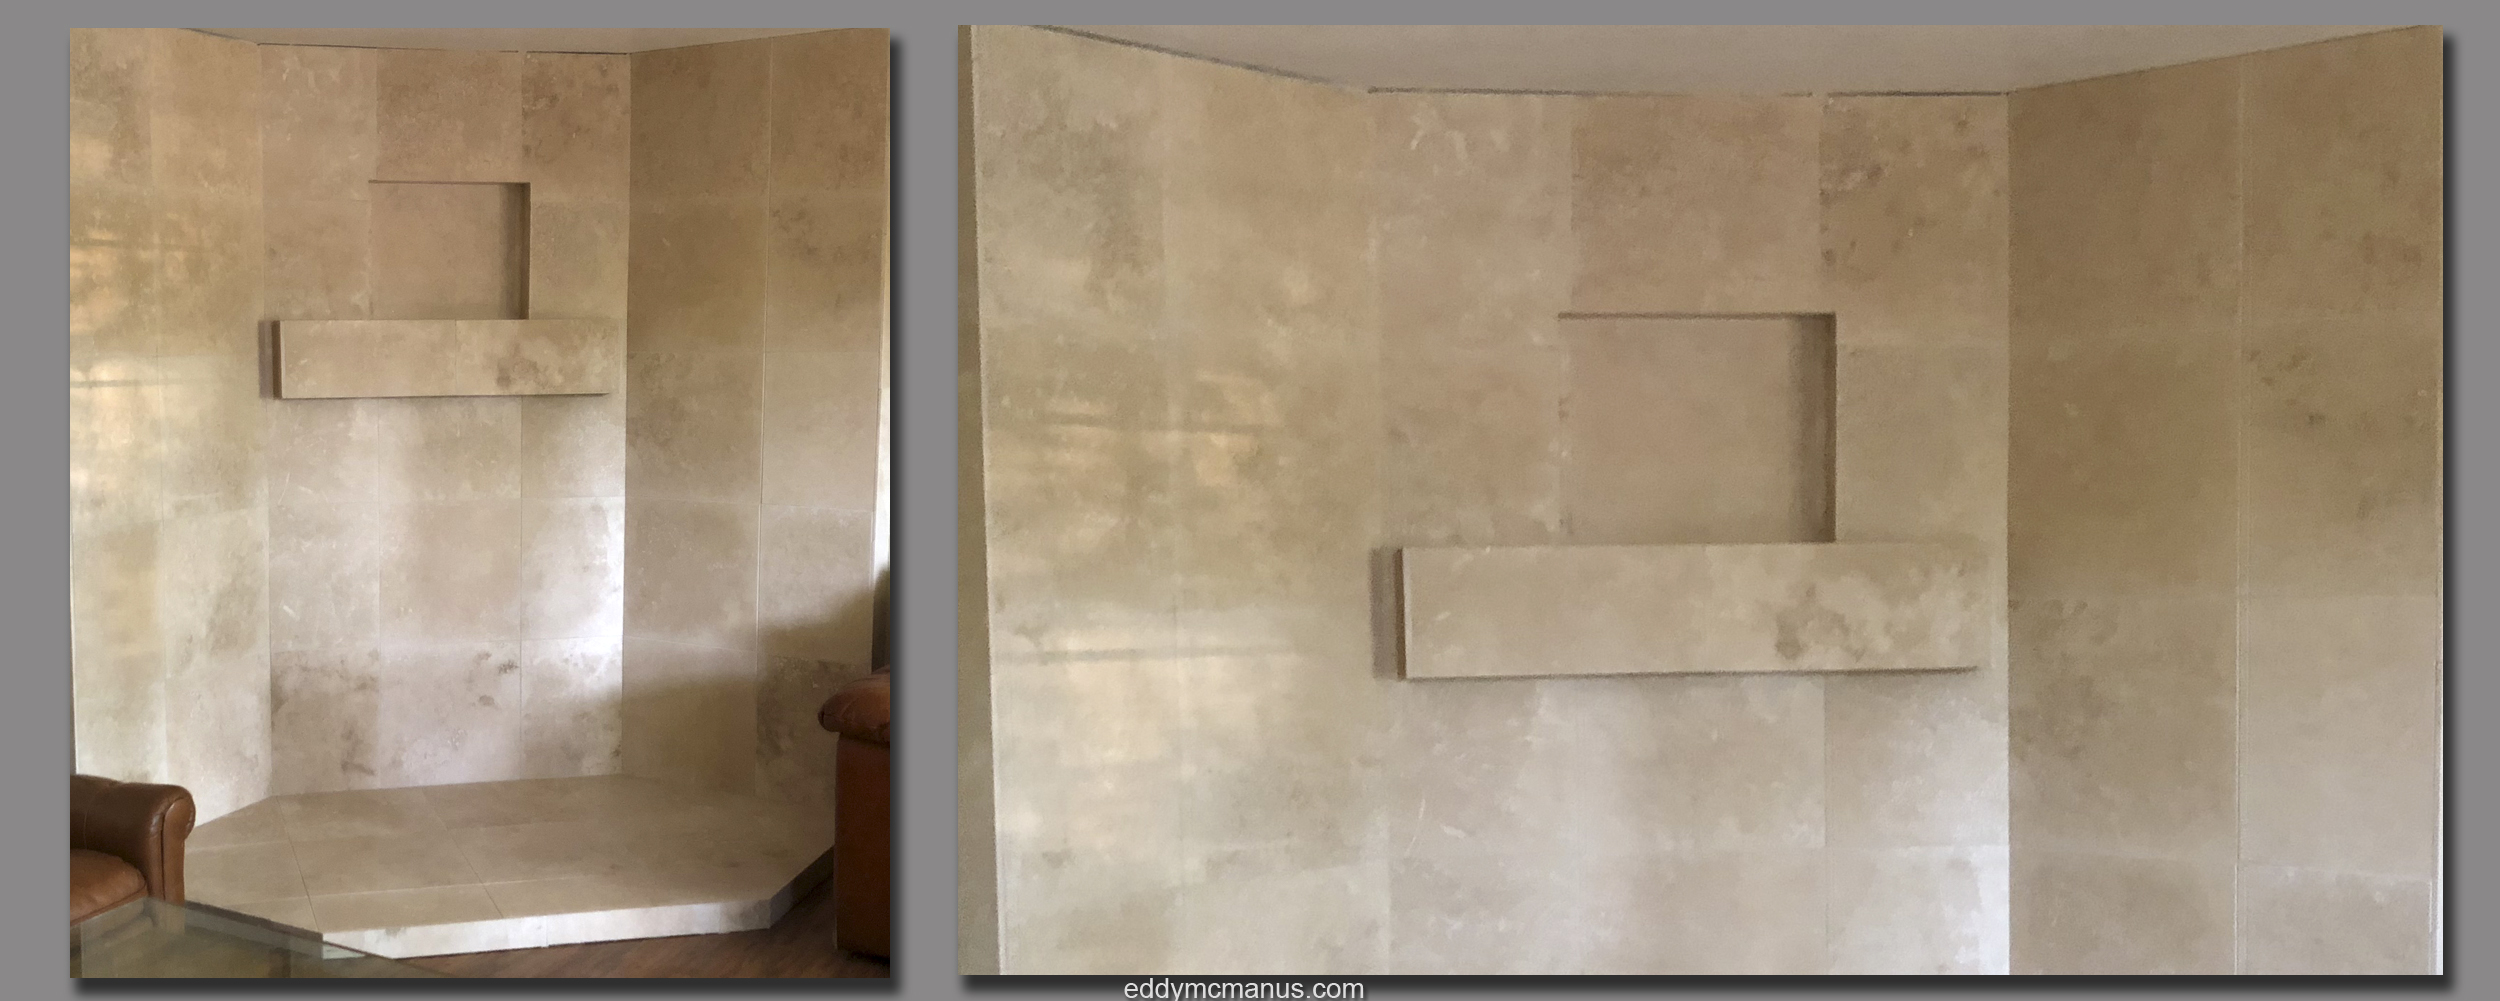 AFTER - Finished Travertine Tile Remodeling Project